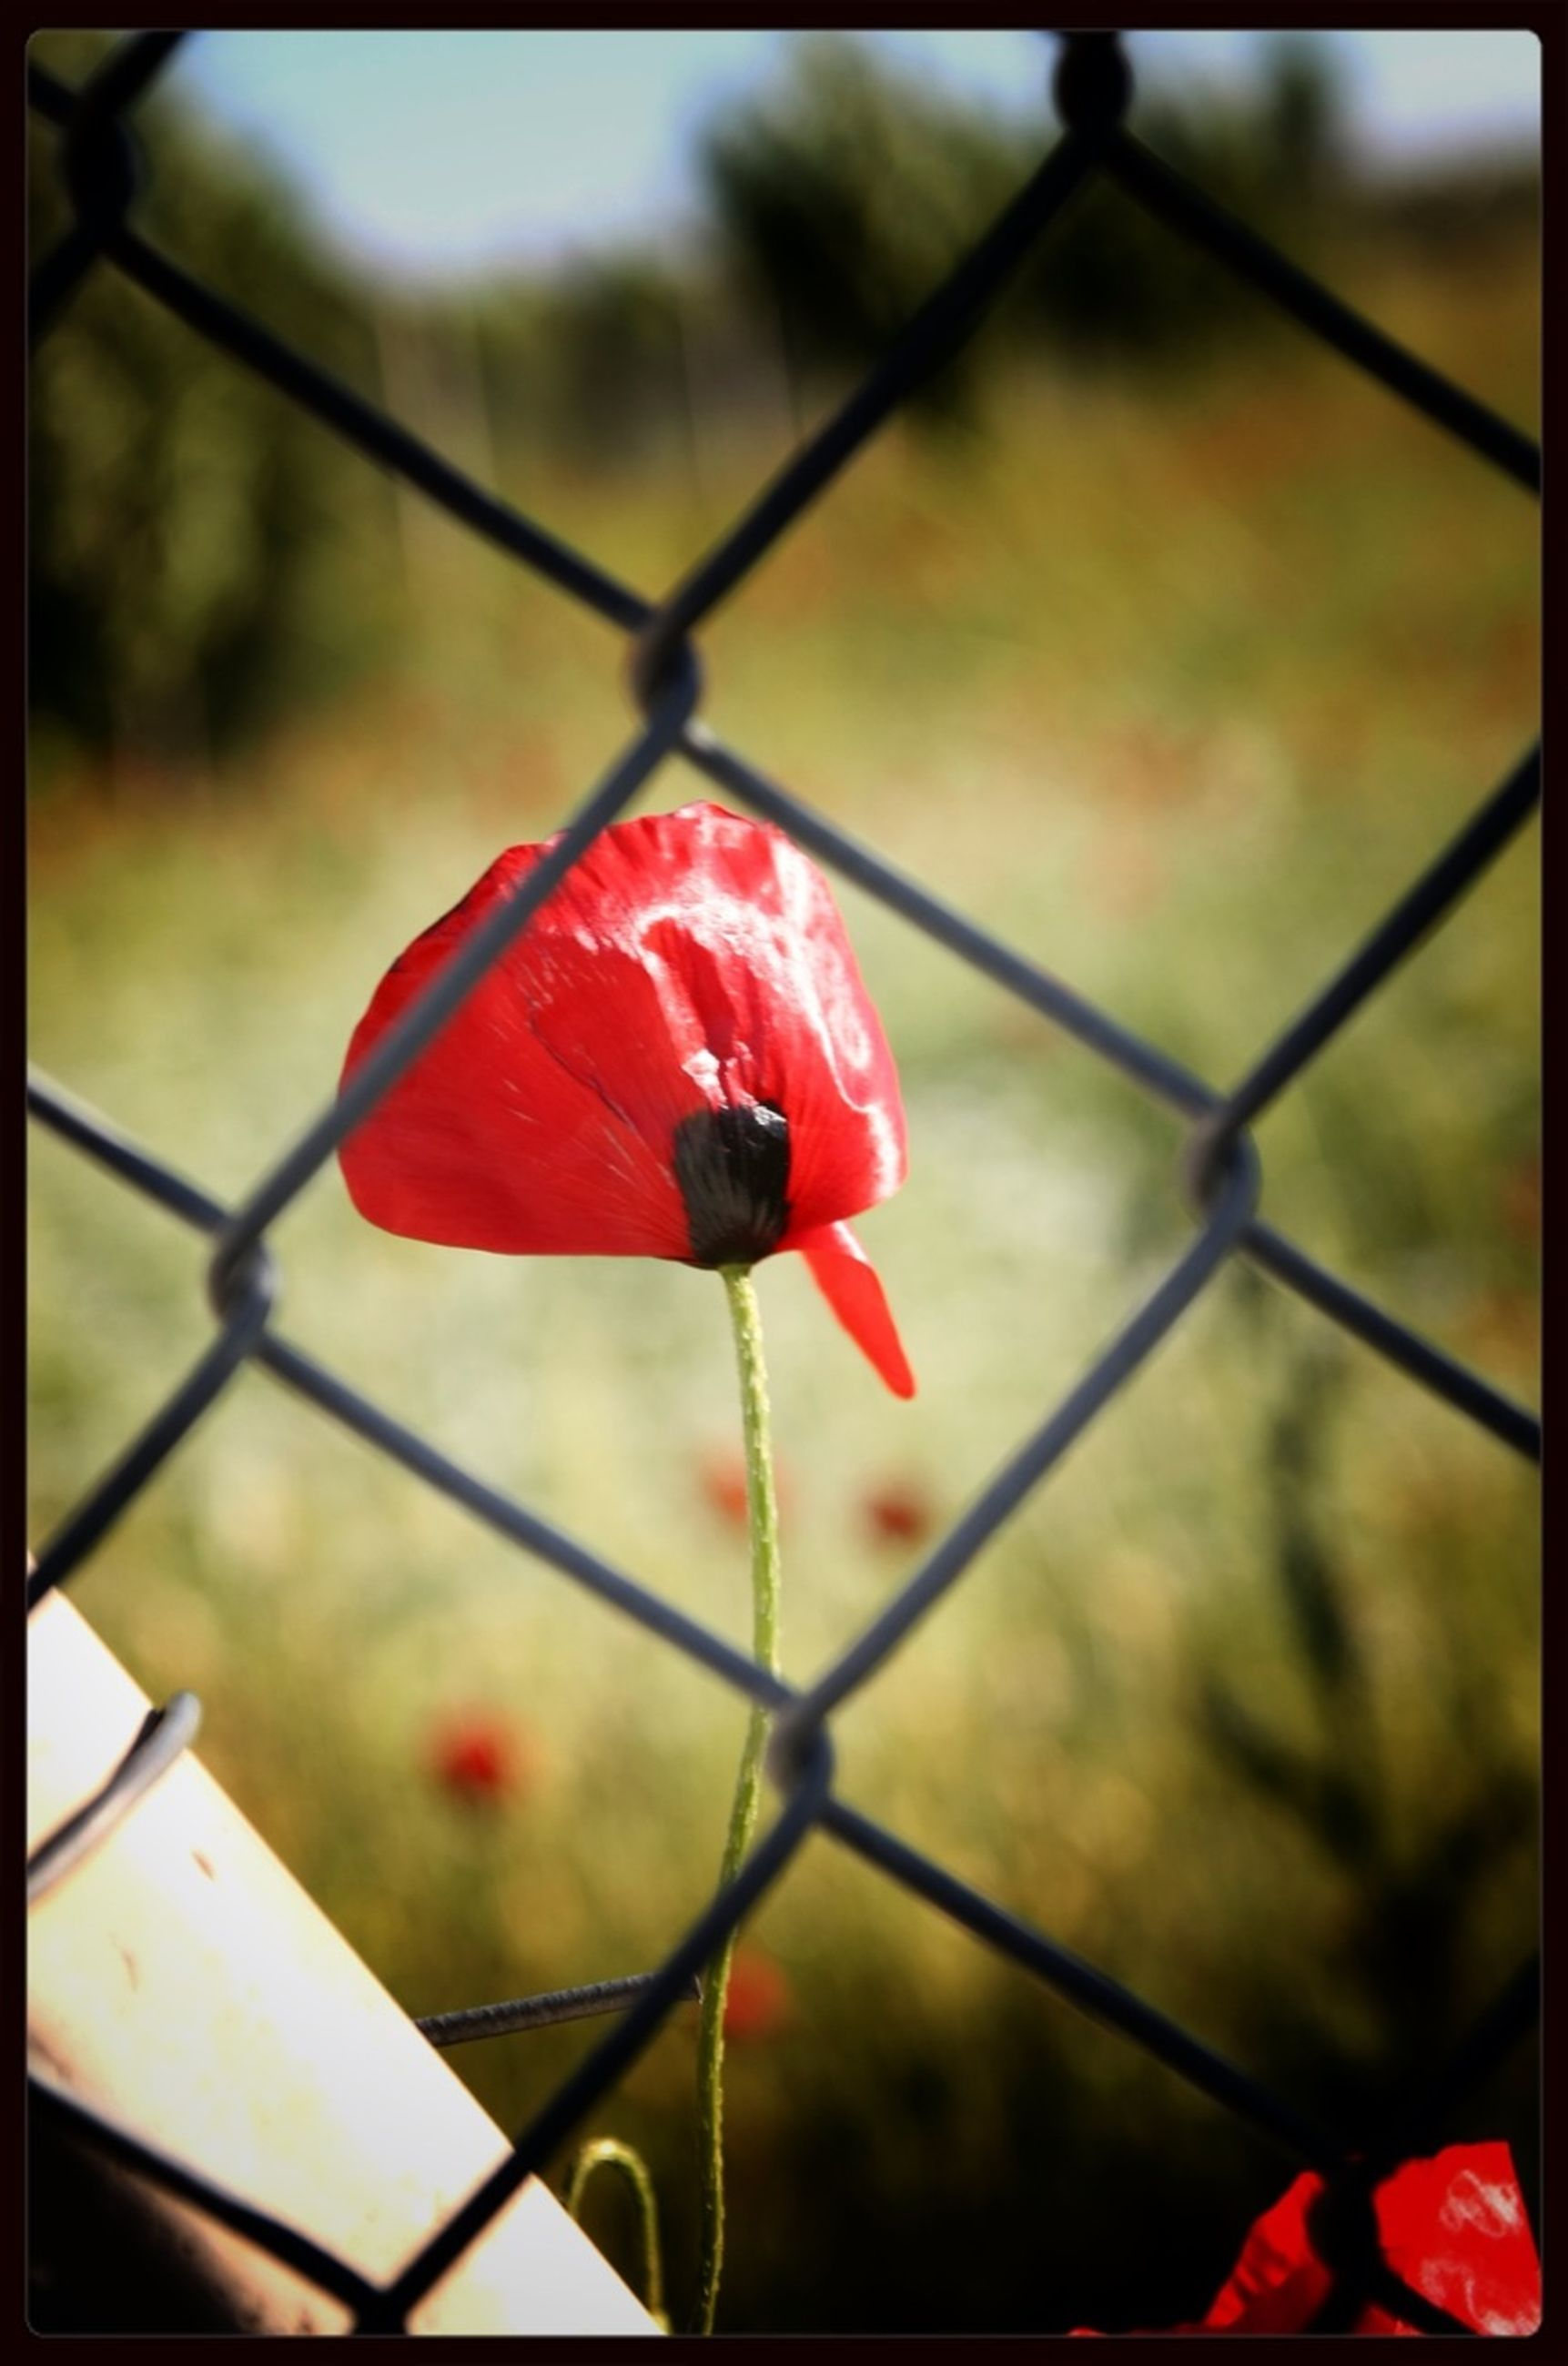 red, chainlink fence, protection, fence, focus on foreground, transfer print, safety, close-up, security, metal, auto post production filter, day, no people, plant, outdoors, nature, fragility, pattern, flower, vibrant color